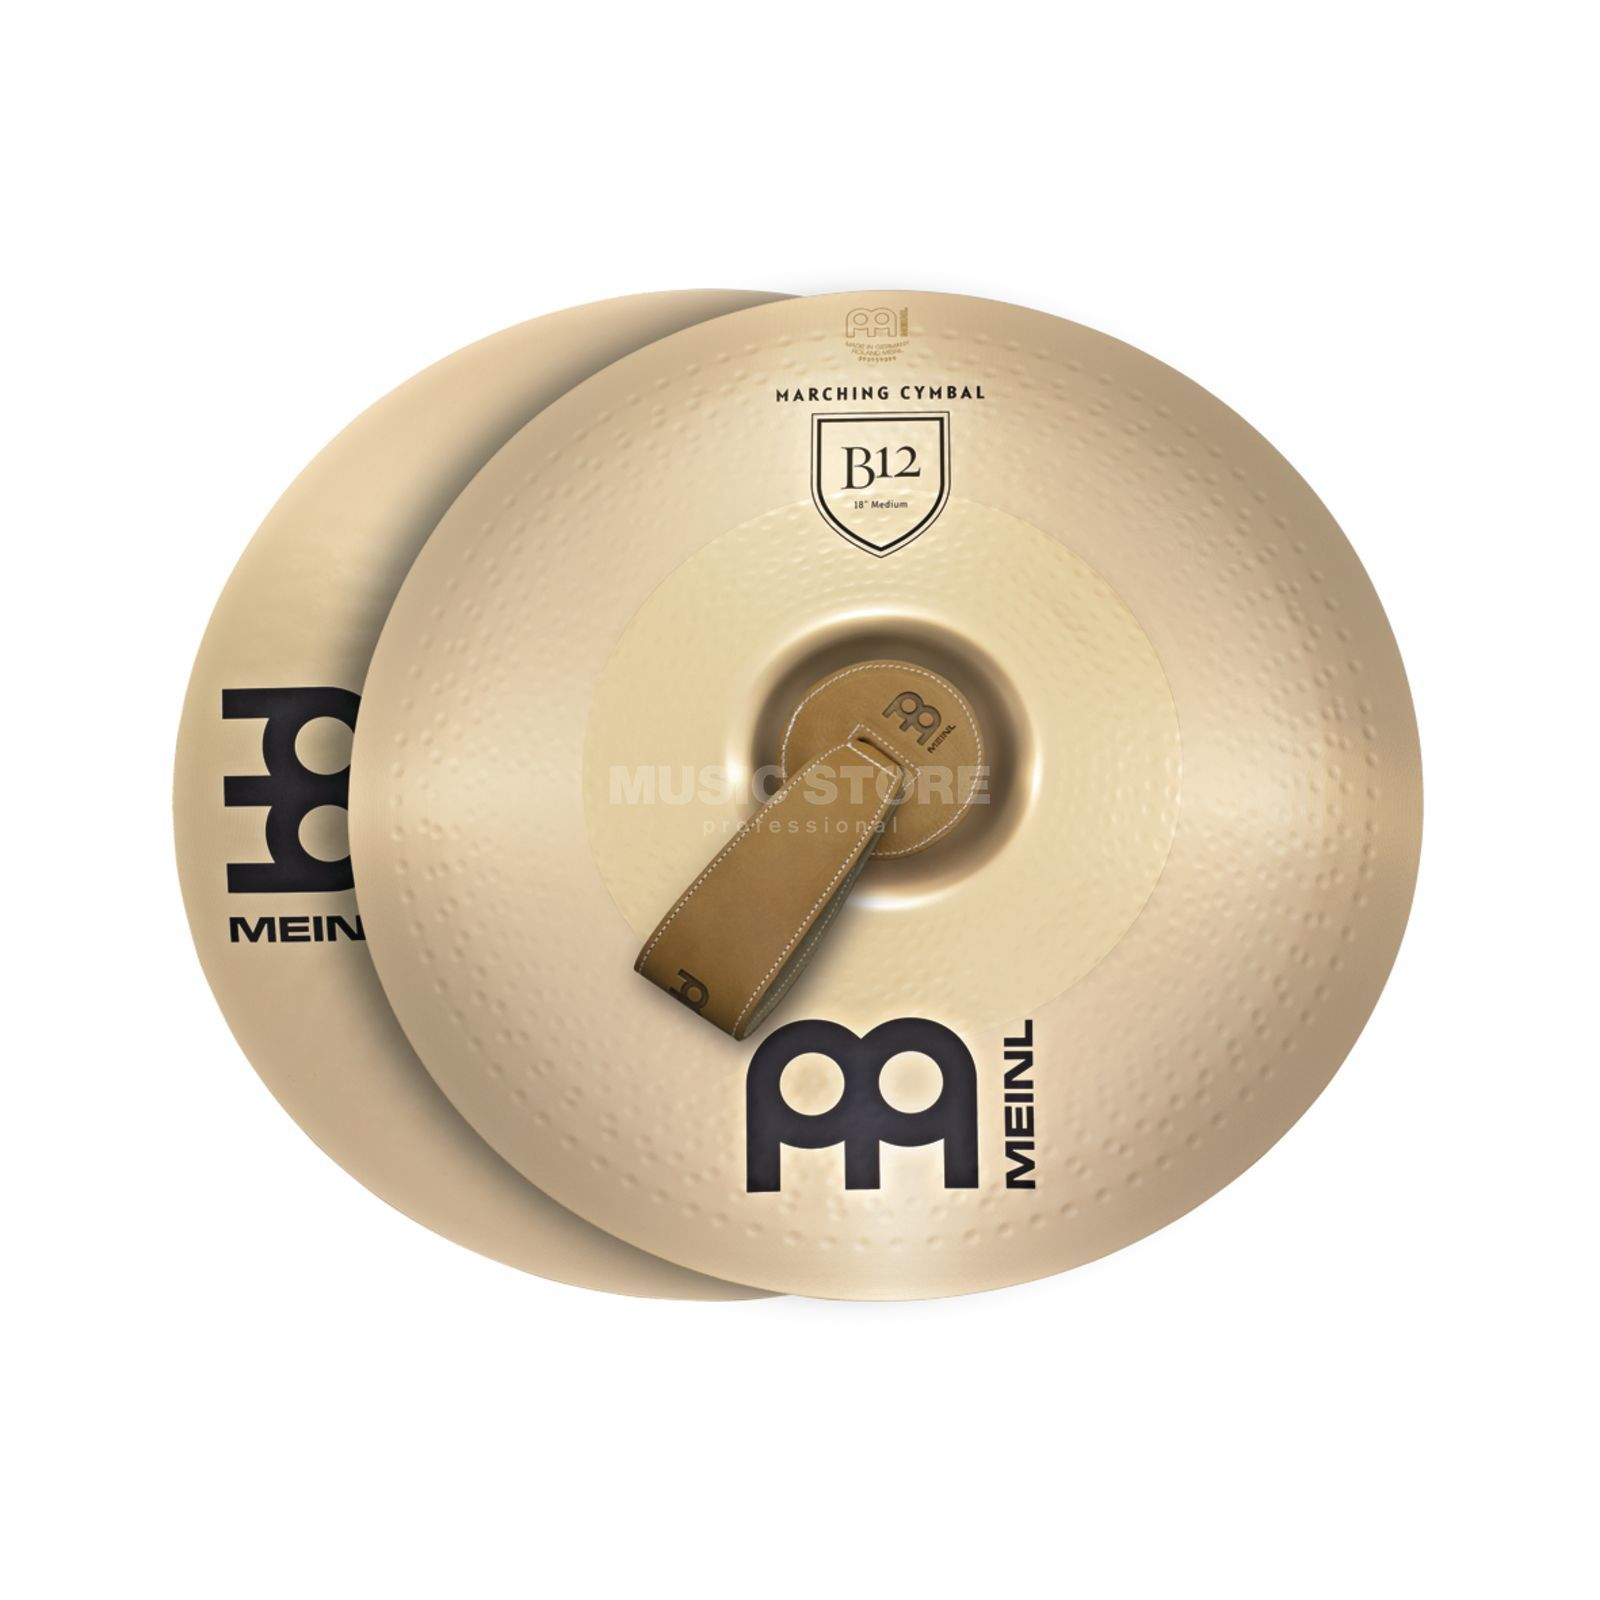 "Meinl B12 Marching Cymbals 20"", Medium, MA-B12-20M Produktbild"